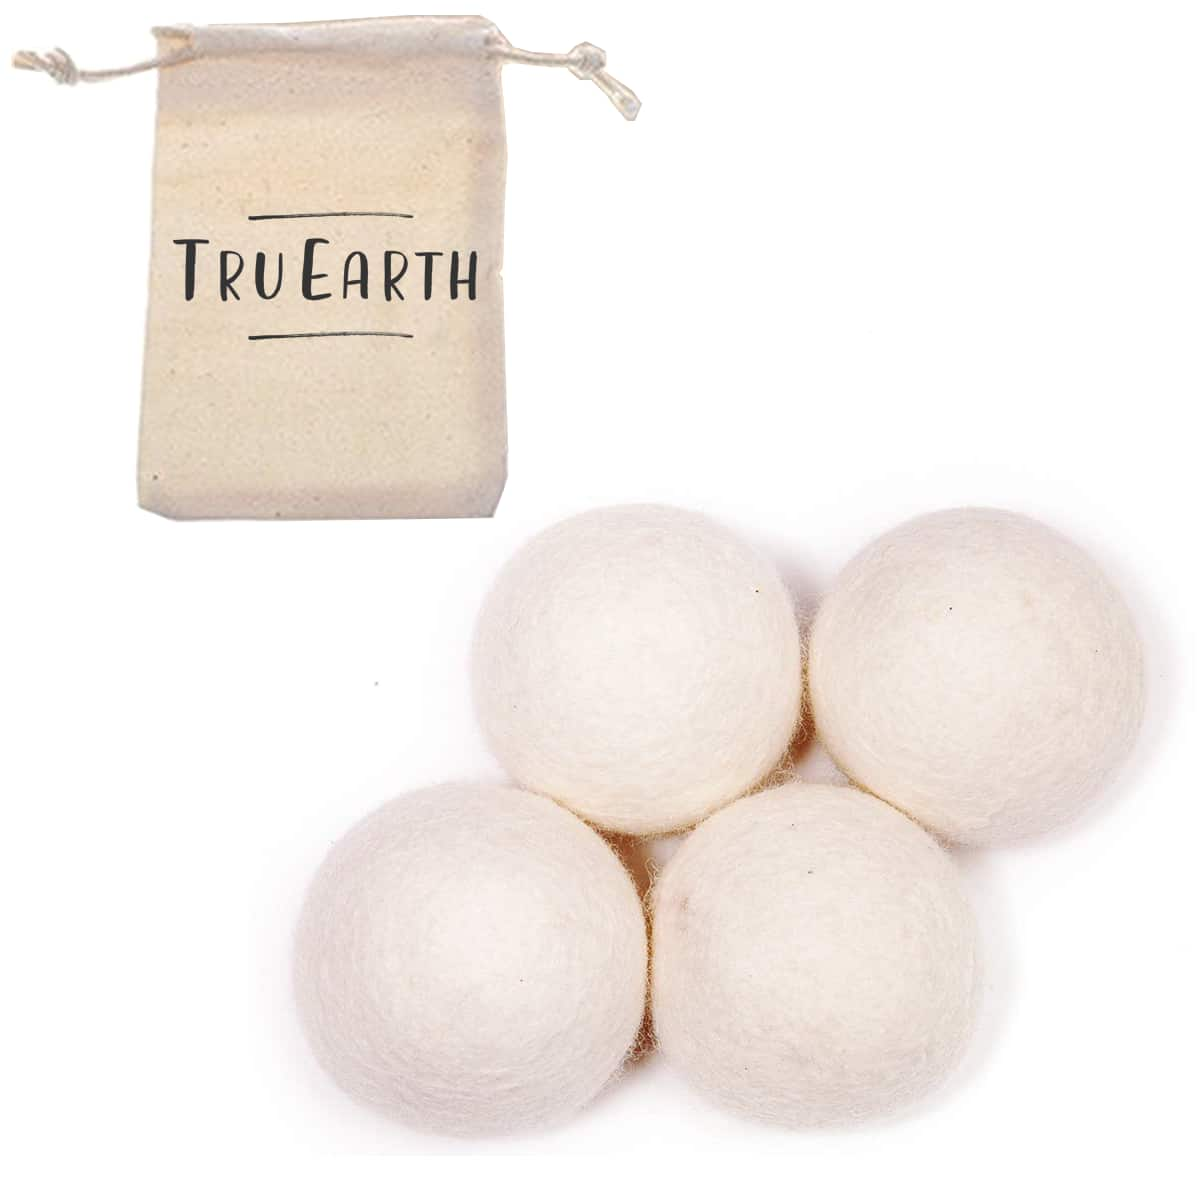 100% Premium Organic Wool Dryer Balls from Tru Earth for Zero Waste Laundry